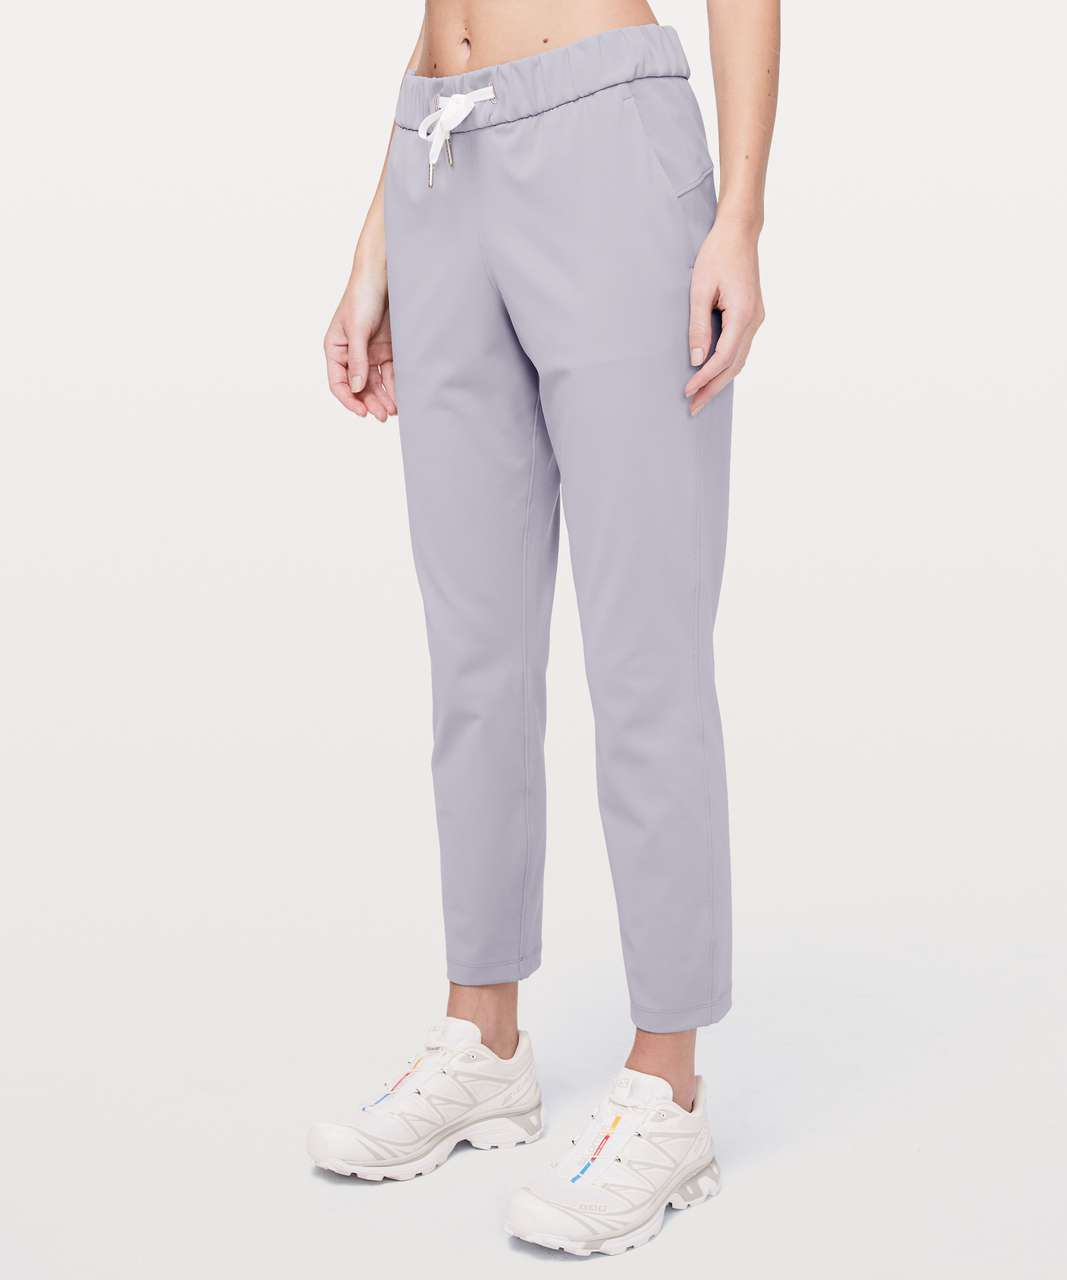 "Lululemon On the Fly 7/8 Pant 27"" - Silverscreen"